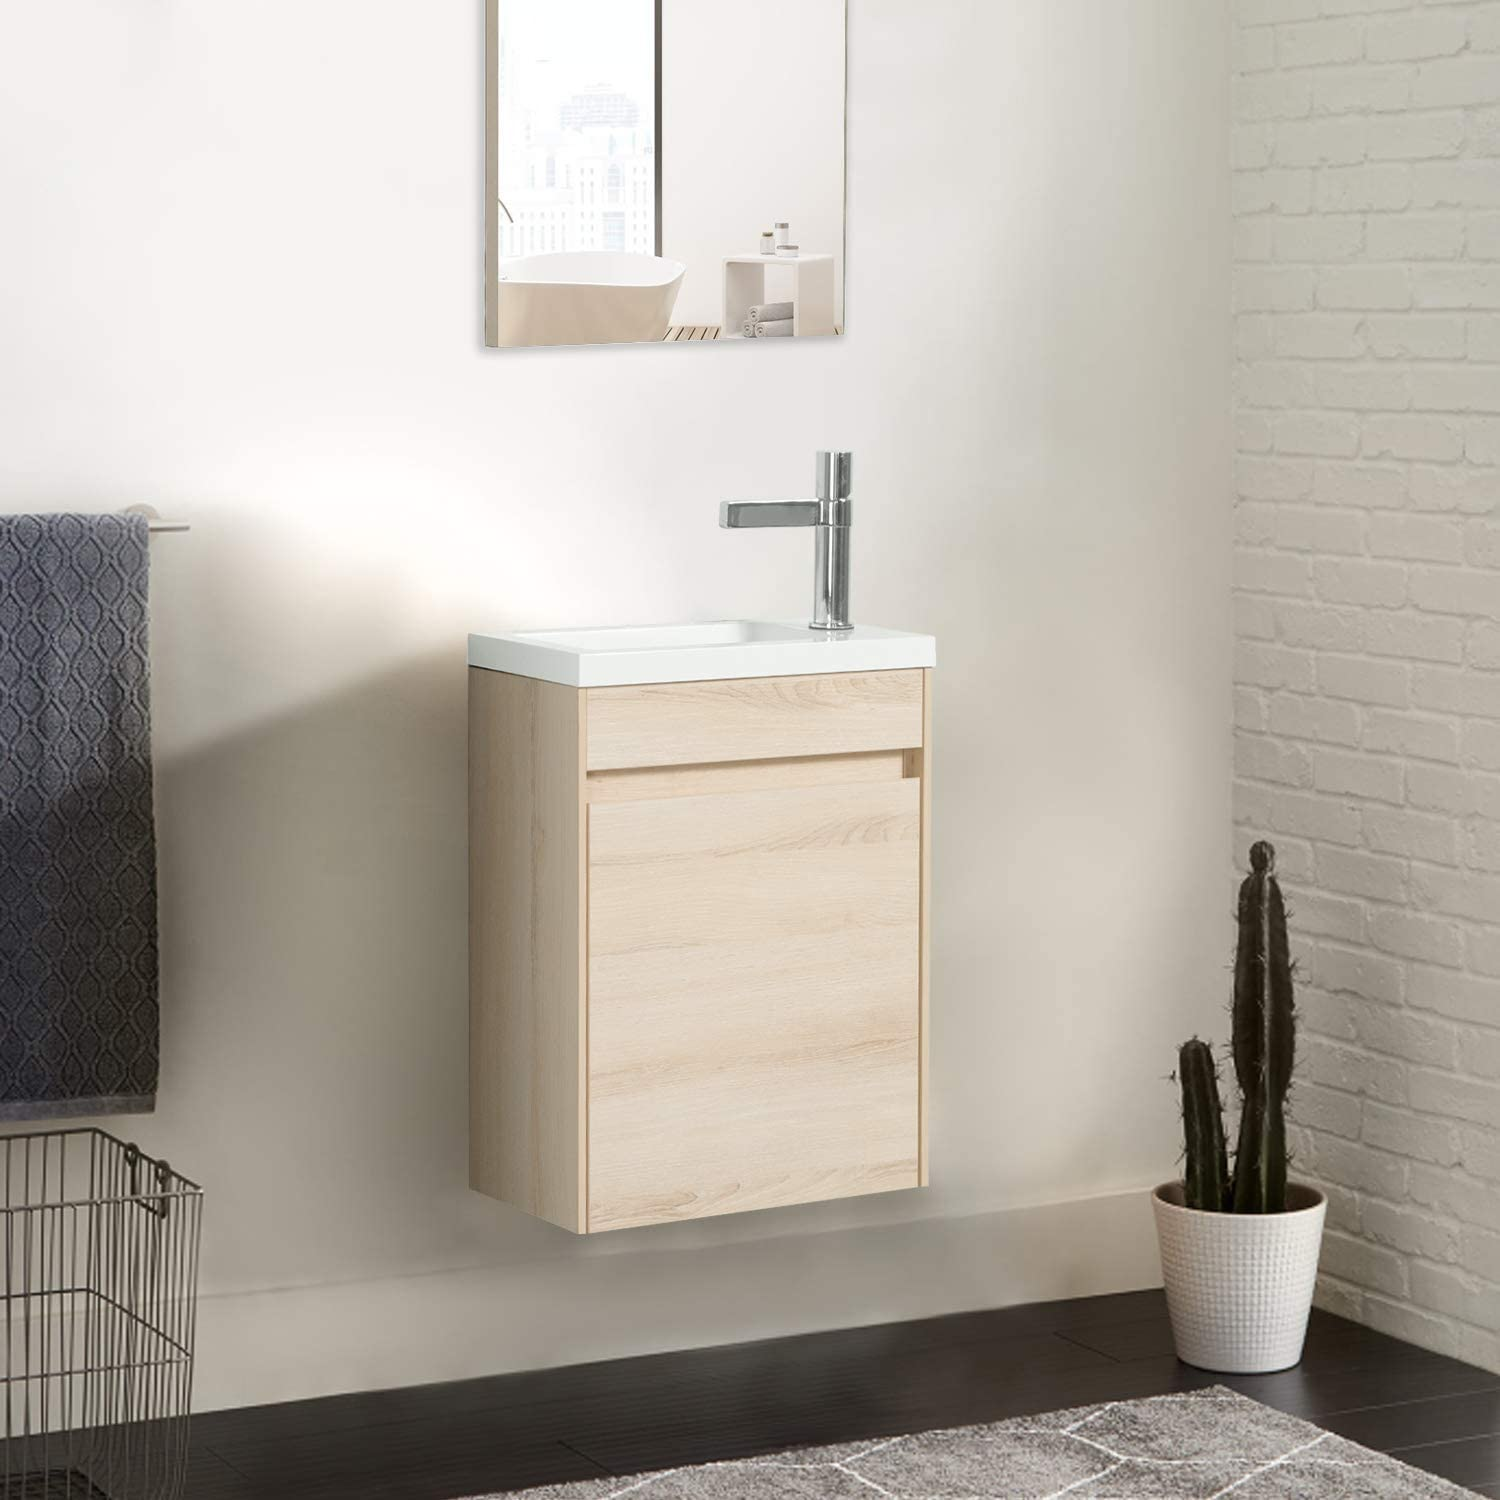 Bathroom Sink Cabinet Set For Small Space Oak Tona Modern Design Wall Mounted Vanity Set With Single Door Invisible Handle 16 Small Bathroom Vanity With Sink Combo Pietra Mini 400 Bathroom Sink